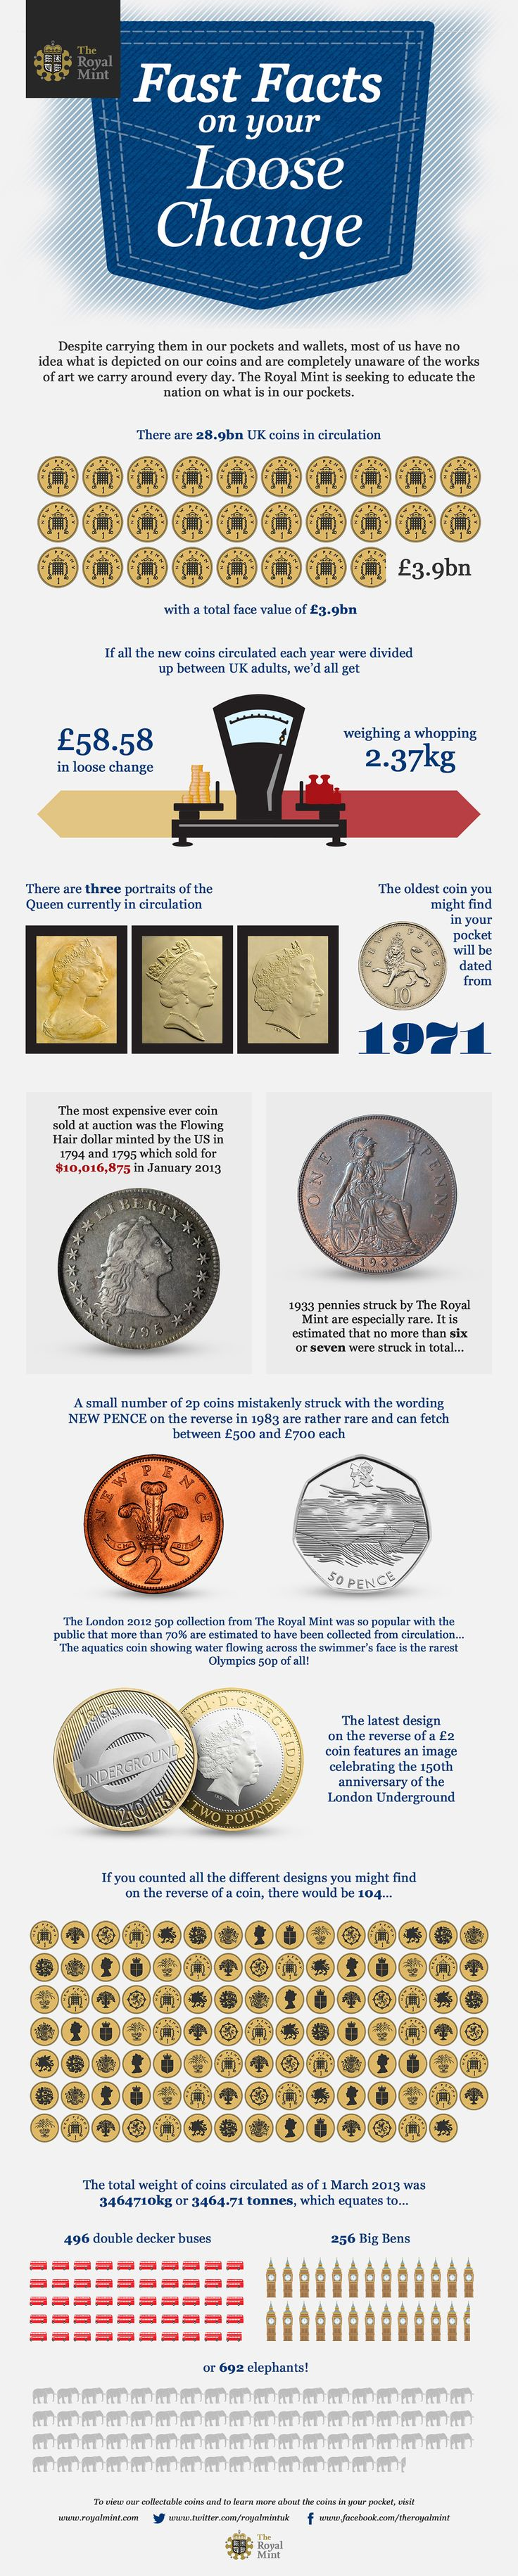 The Royal Mint infographic: Fast Facts On Your Loose Change